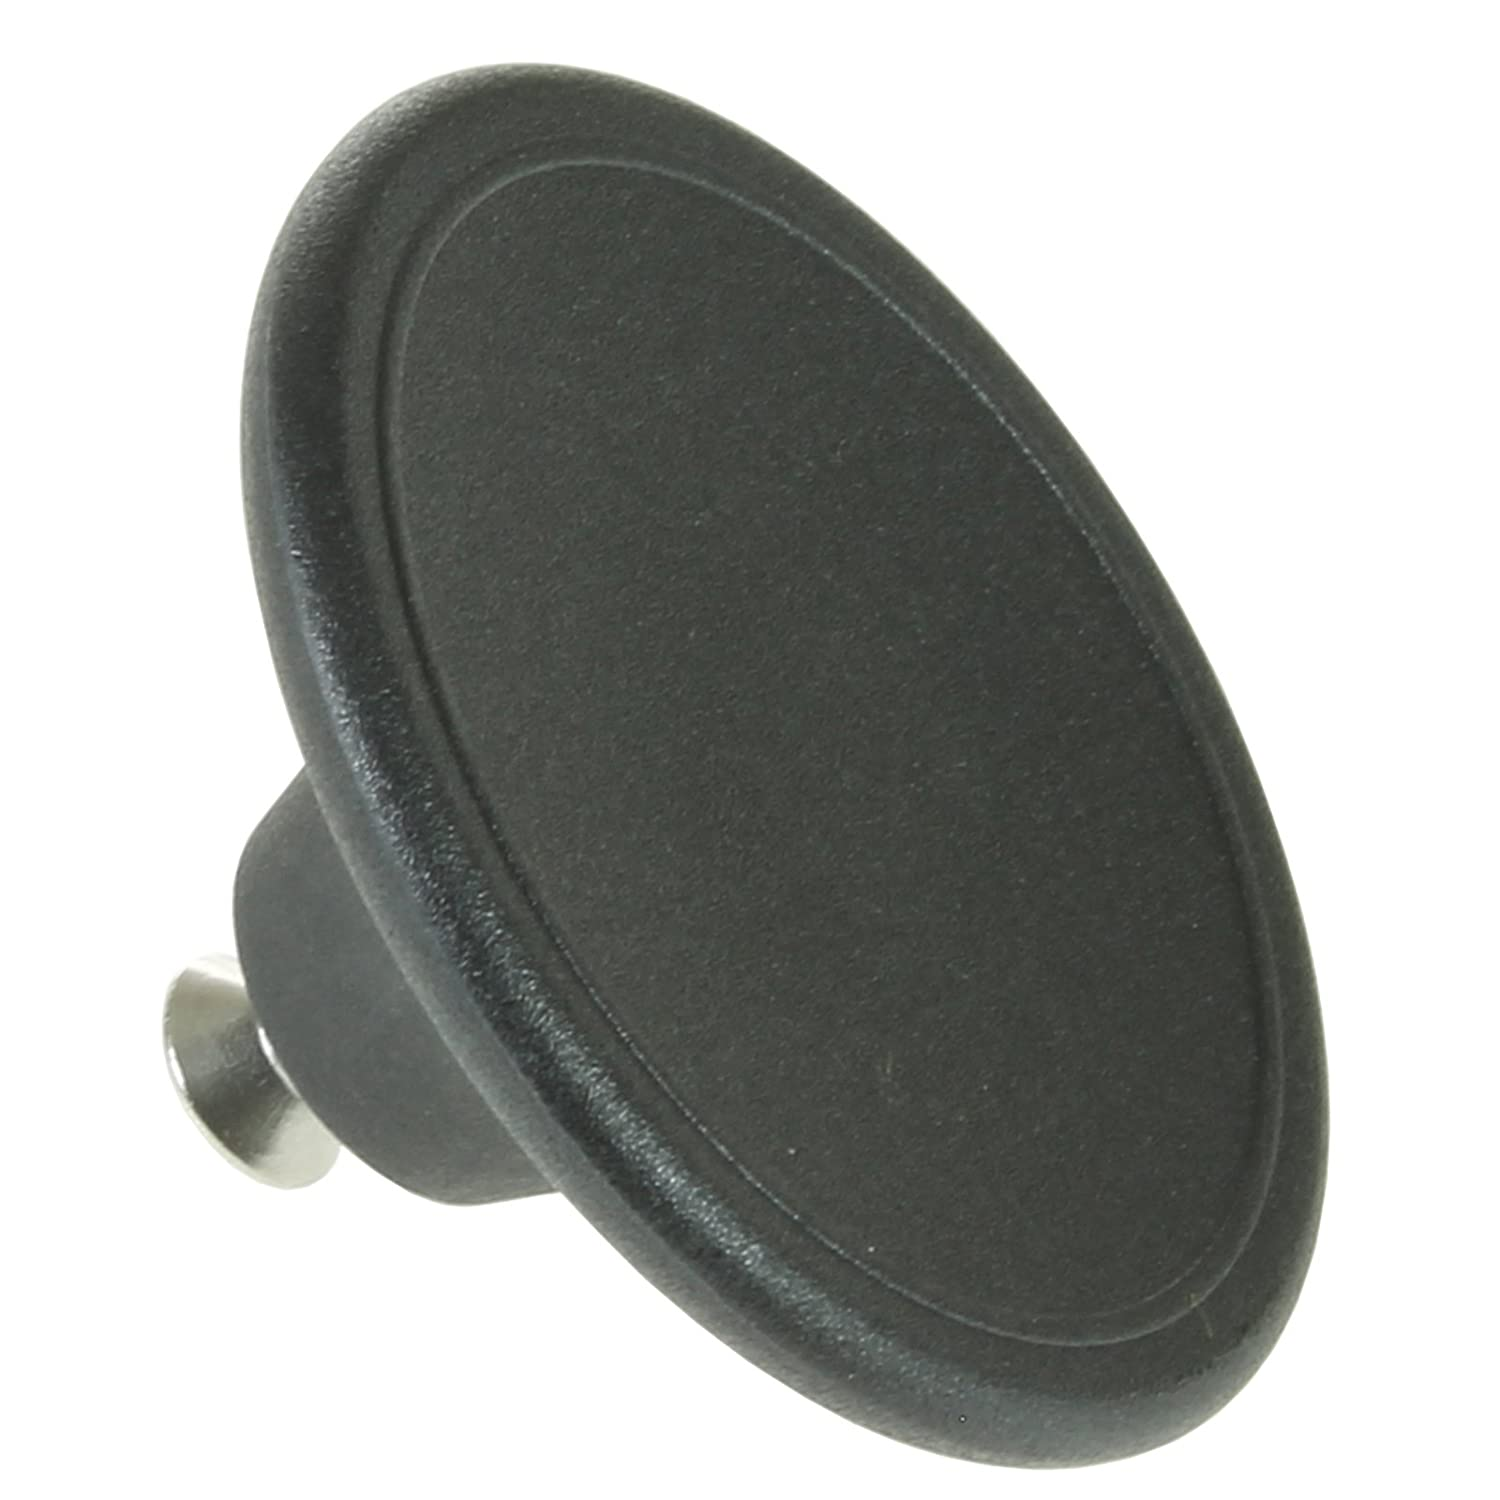 SPARES2GO Universal 5.5cm Large Handle Lid Knob For Slow Cooker Saucepan Casserole Dish (Black)